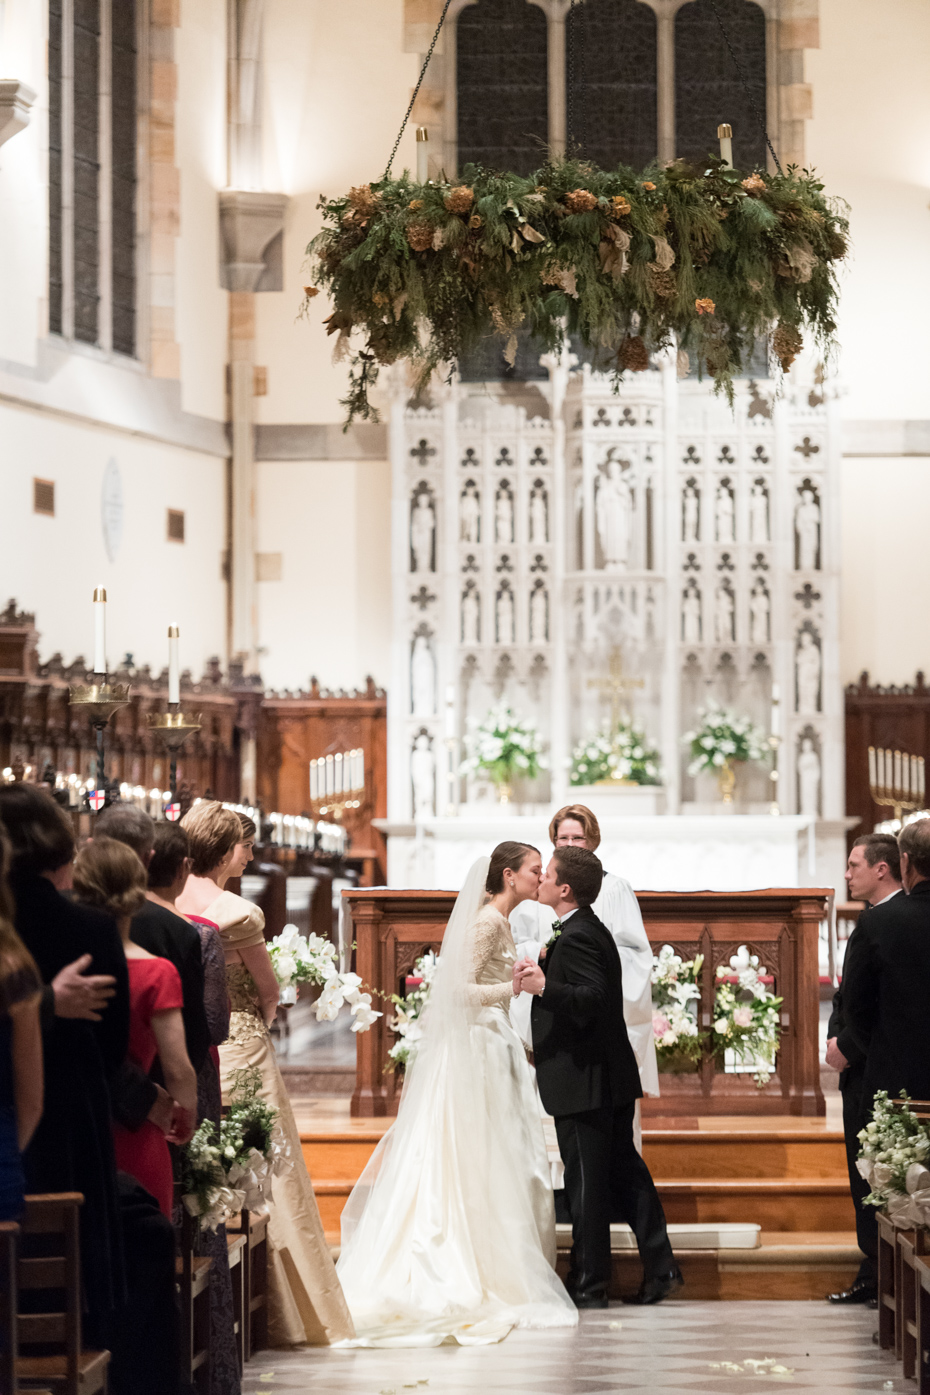 Sewanee Tennessee Wedding at All Saints Chapel and Sewanee Inn